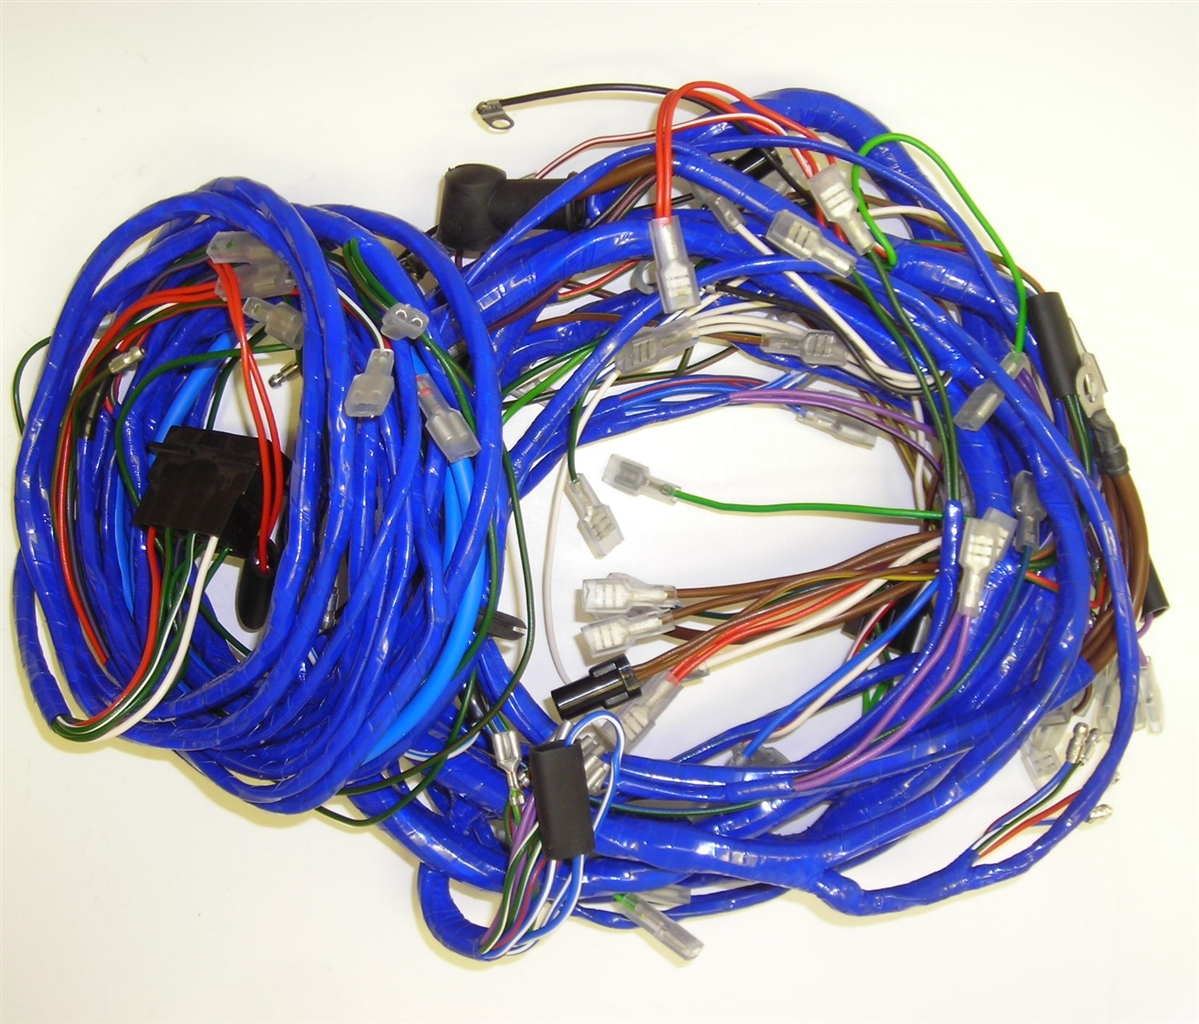 Main Wiring Harness Sunbeam Tiger Kit